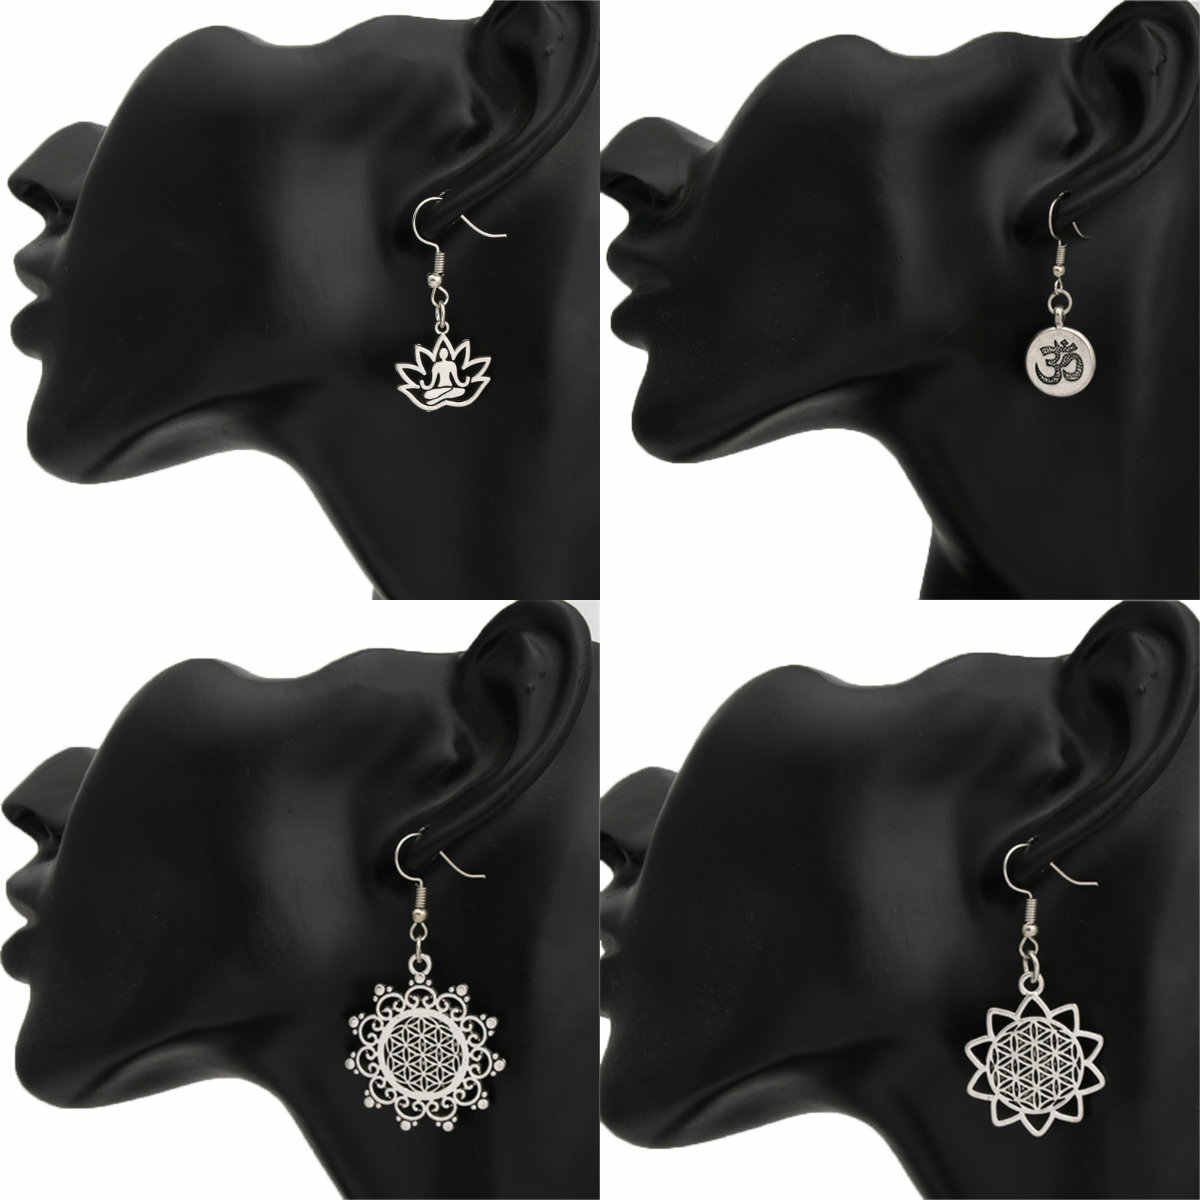 1pair Flower Of Life Religious Earring Jewelry Arabia India Yoga Jewelry Thailand India Hippie Jewelry Yoga Jewelry